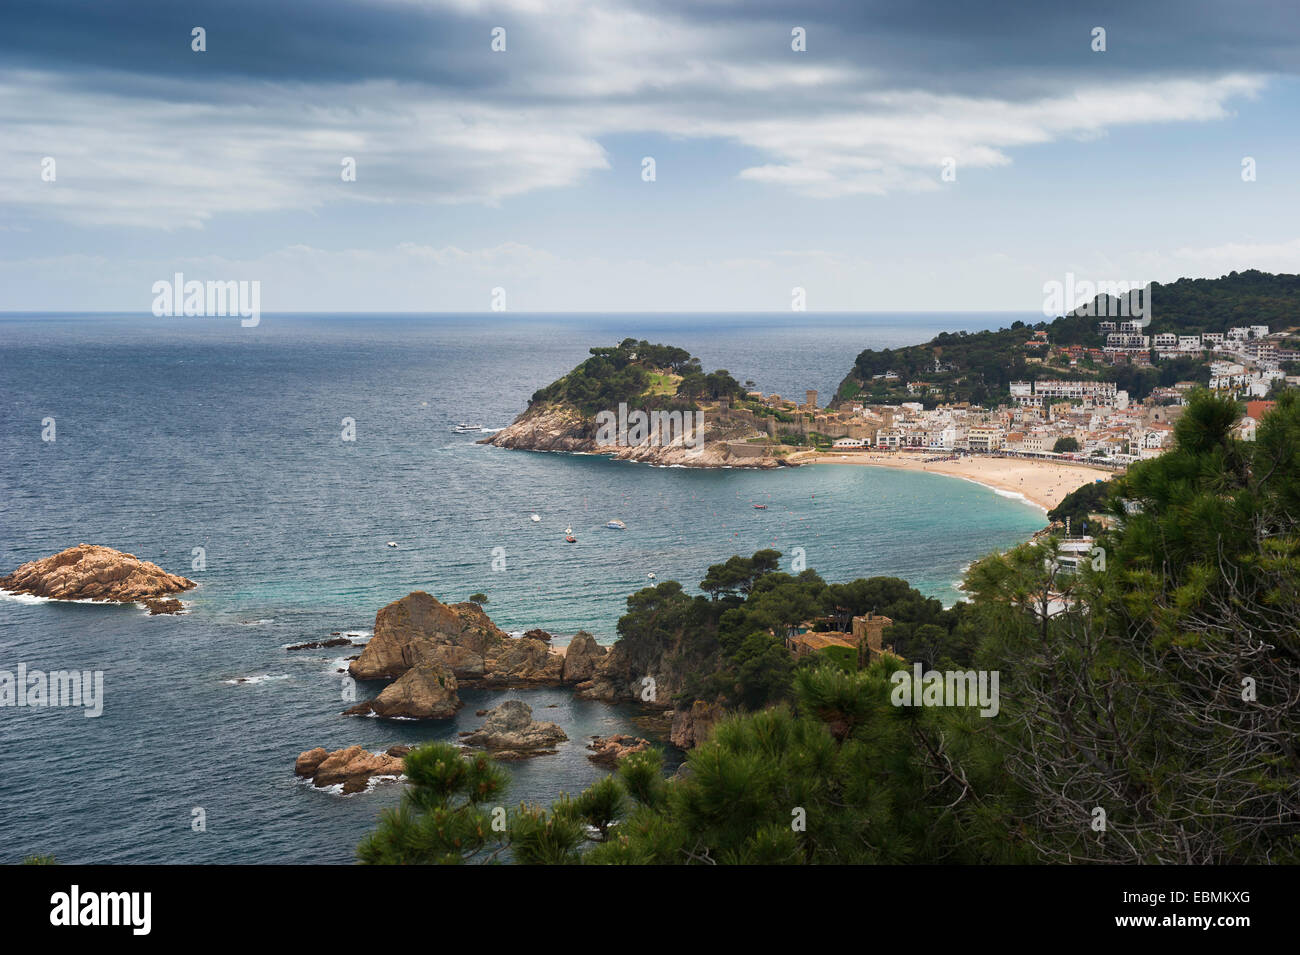 Town with sandy beach near the sea, Tossa de Mar, Costa Brava, Catalonia, Spain - Stock Image